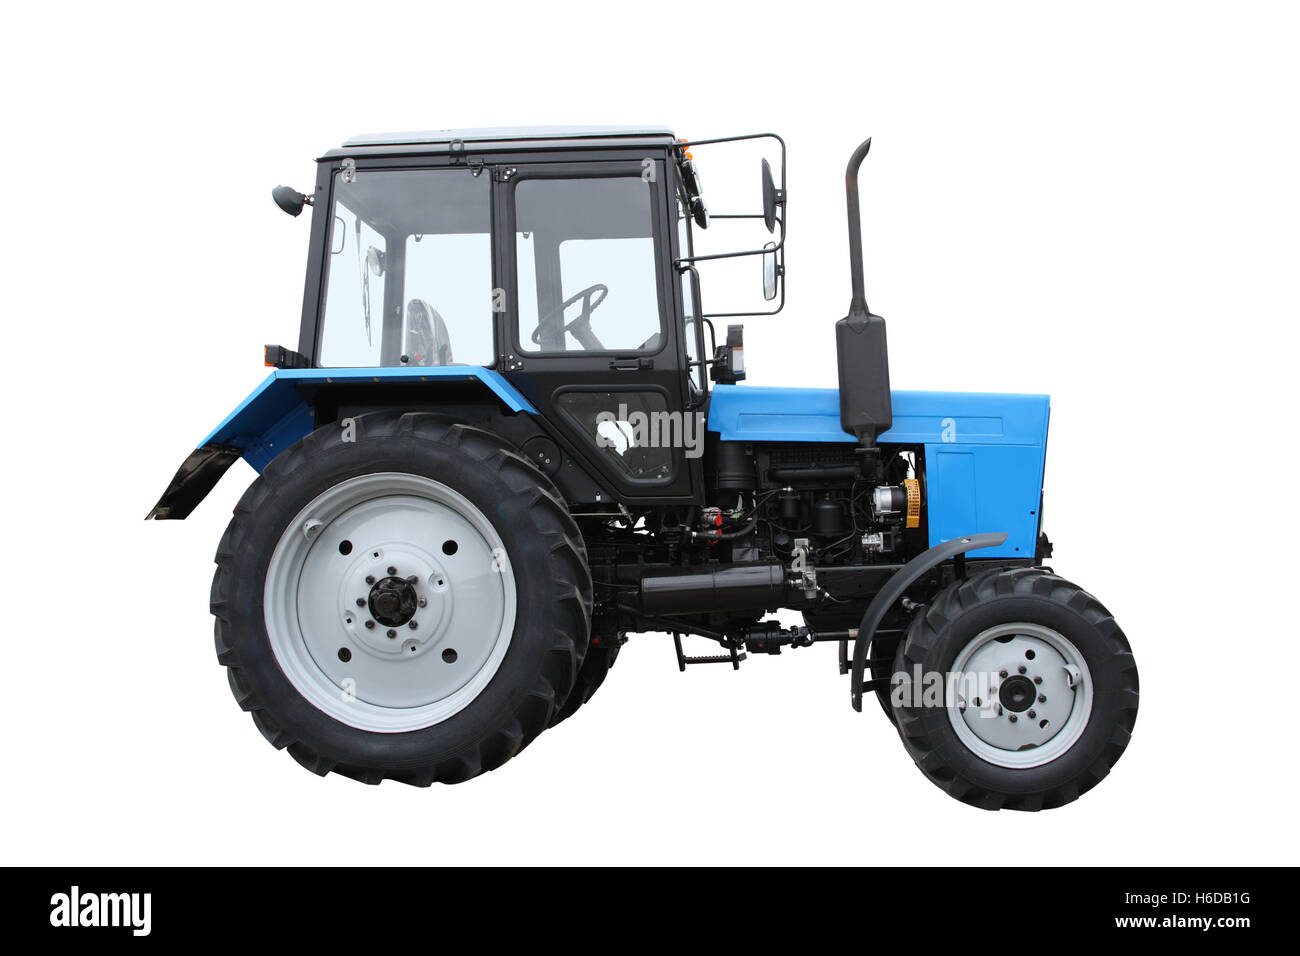 Blue tractor isolated on a white background - Stock Image